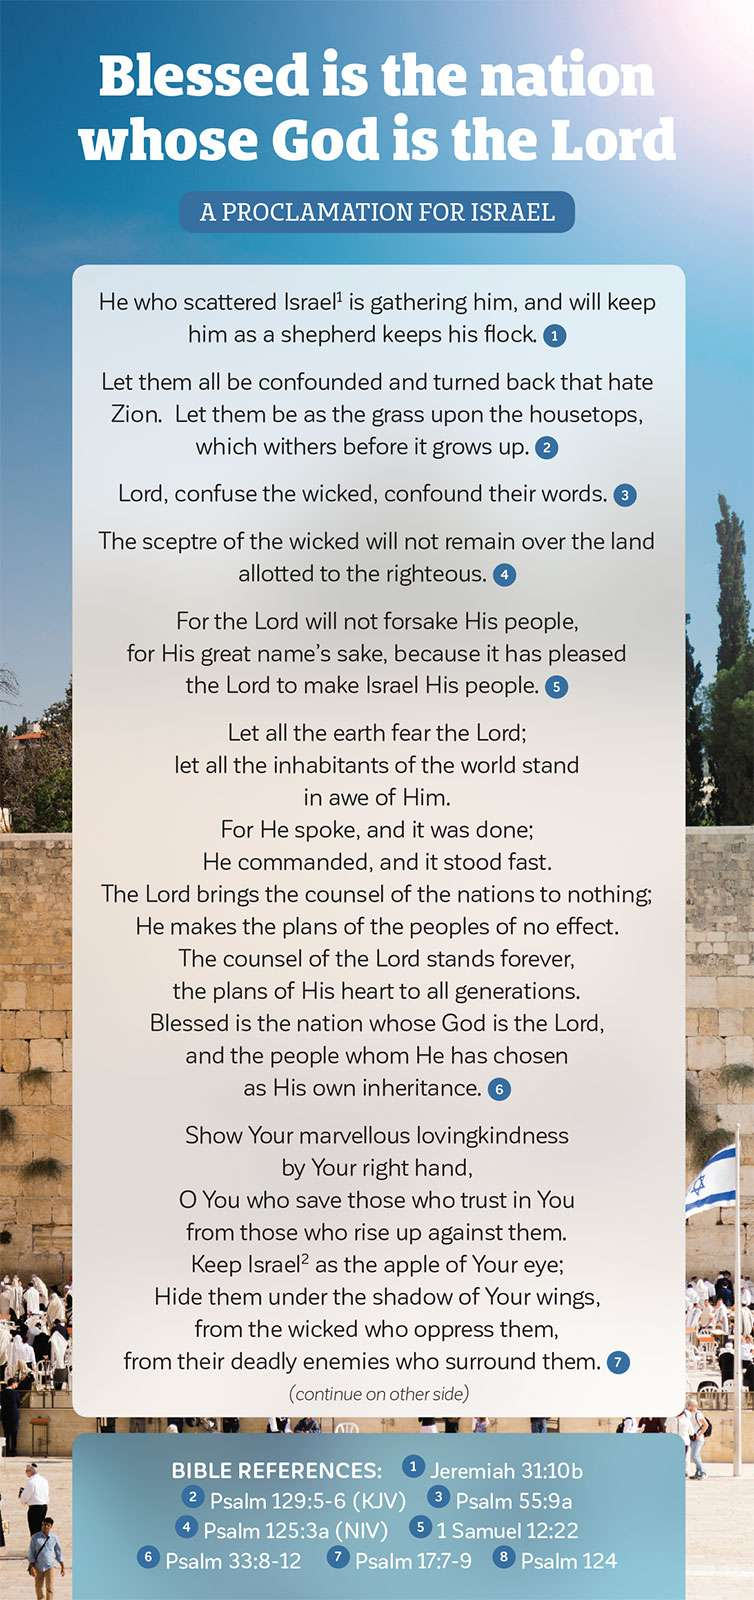 A Proclamation For Israel - Blessed is the nation whose God is the Lord